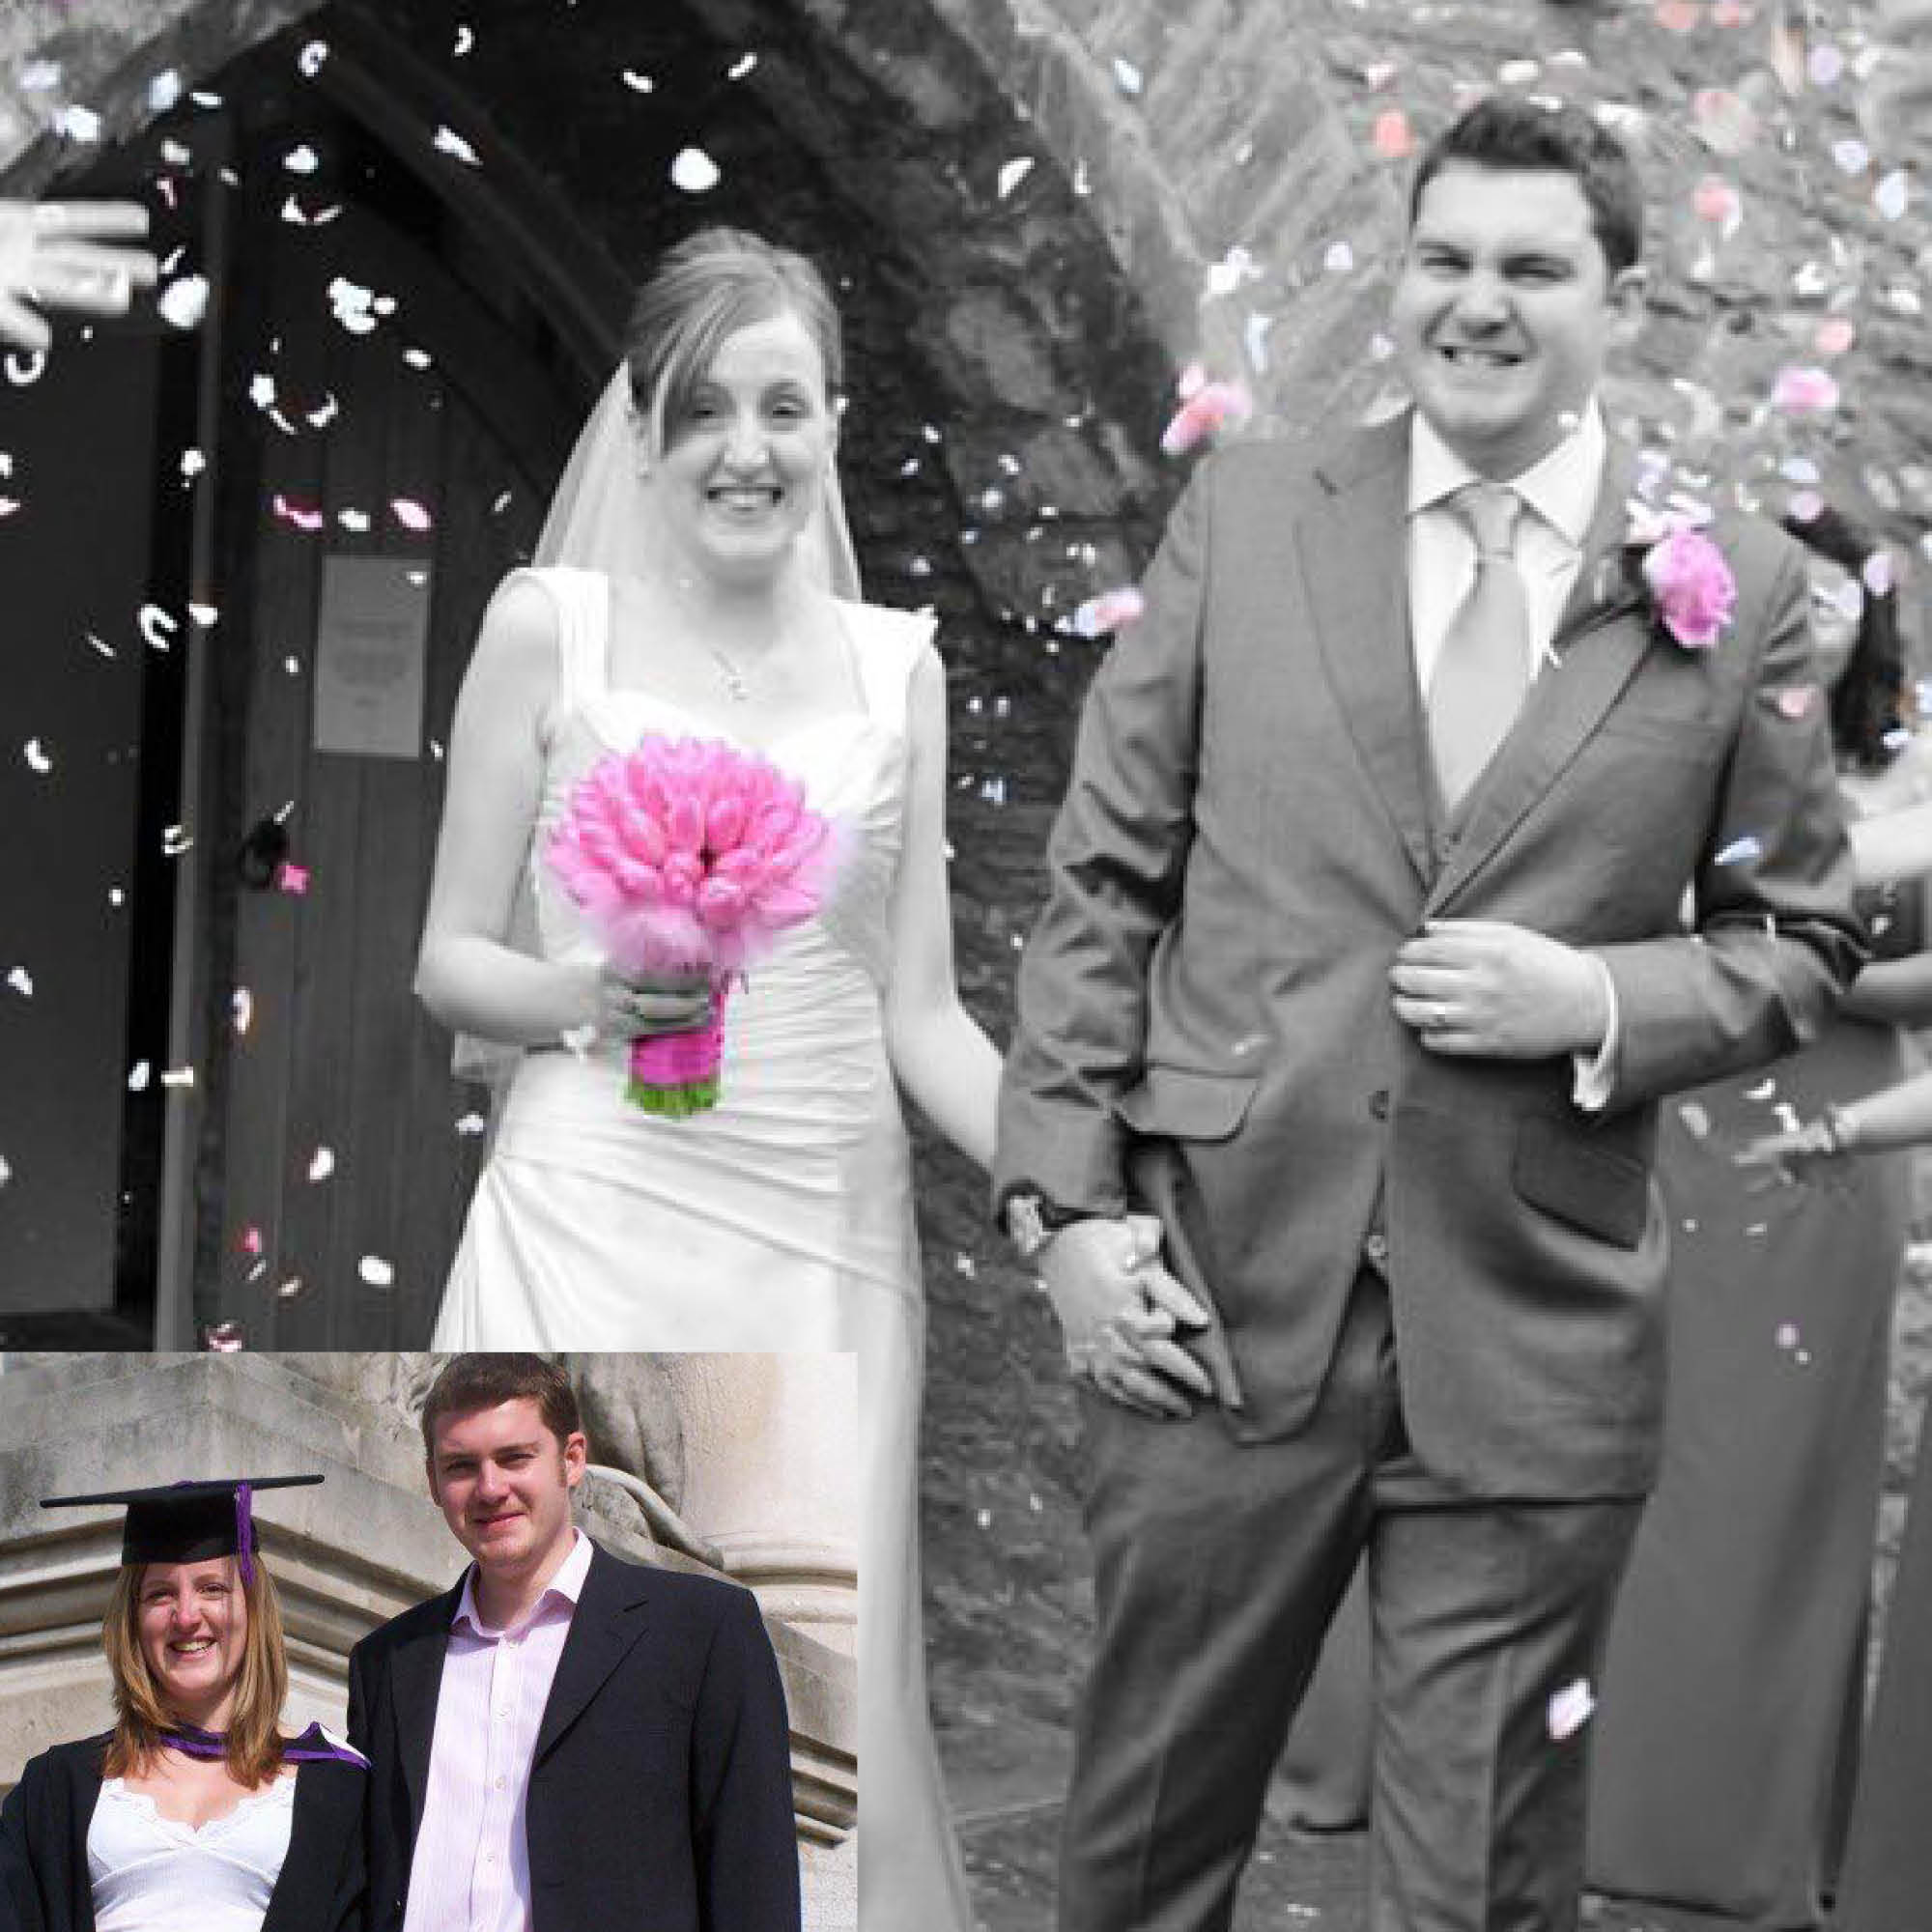 Adam and Melinda Spencer - ...also met in The Registry in 2003 and have been married for 8 years! Adam studied Criminology and Melinda studied Media Studies, and both graduated in 2006. They have 2 girls.